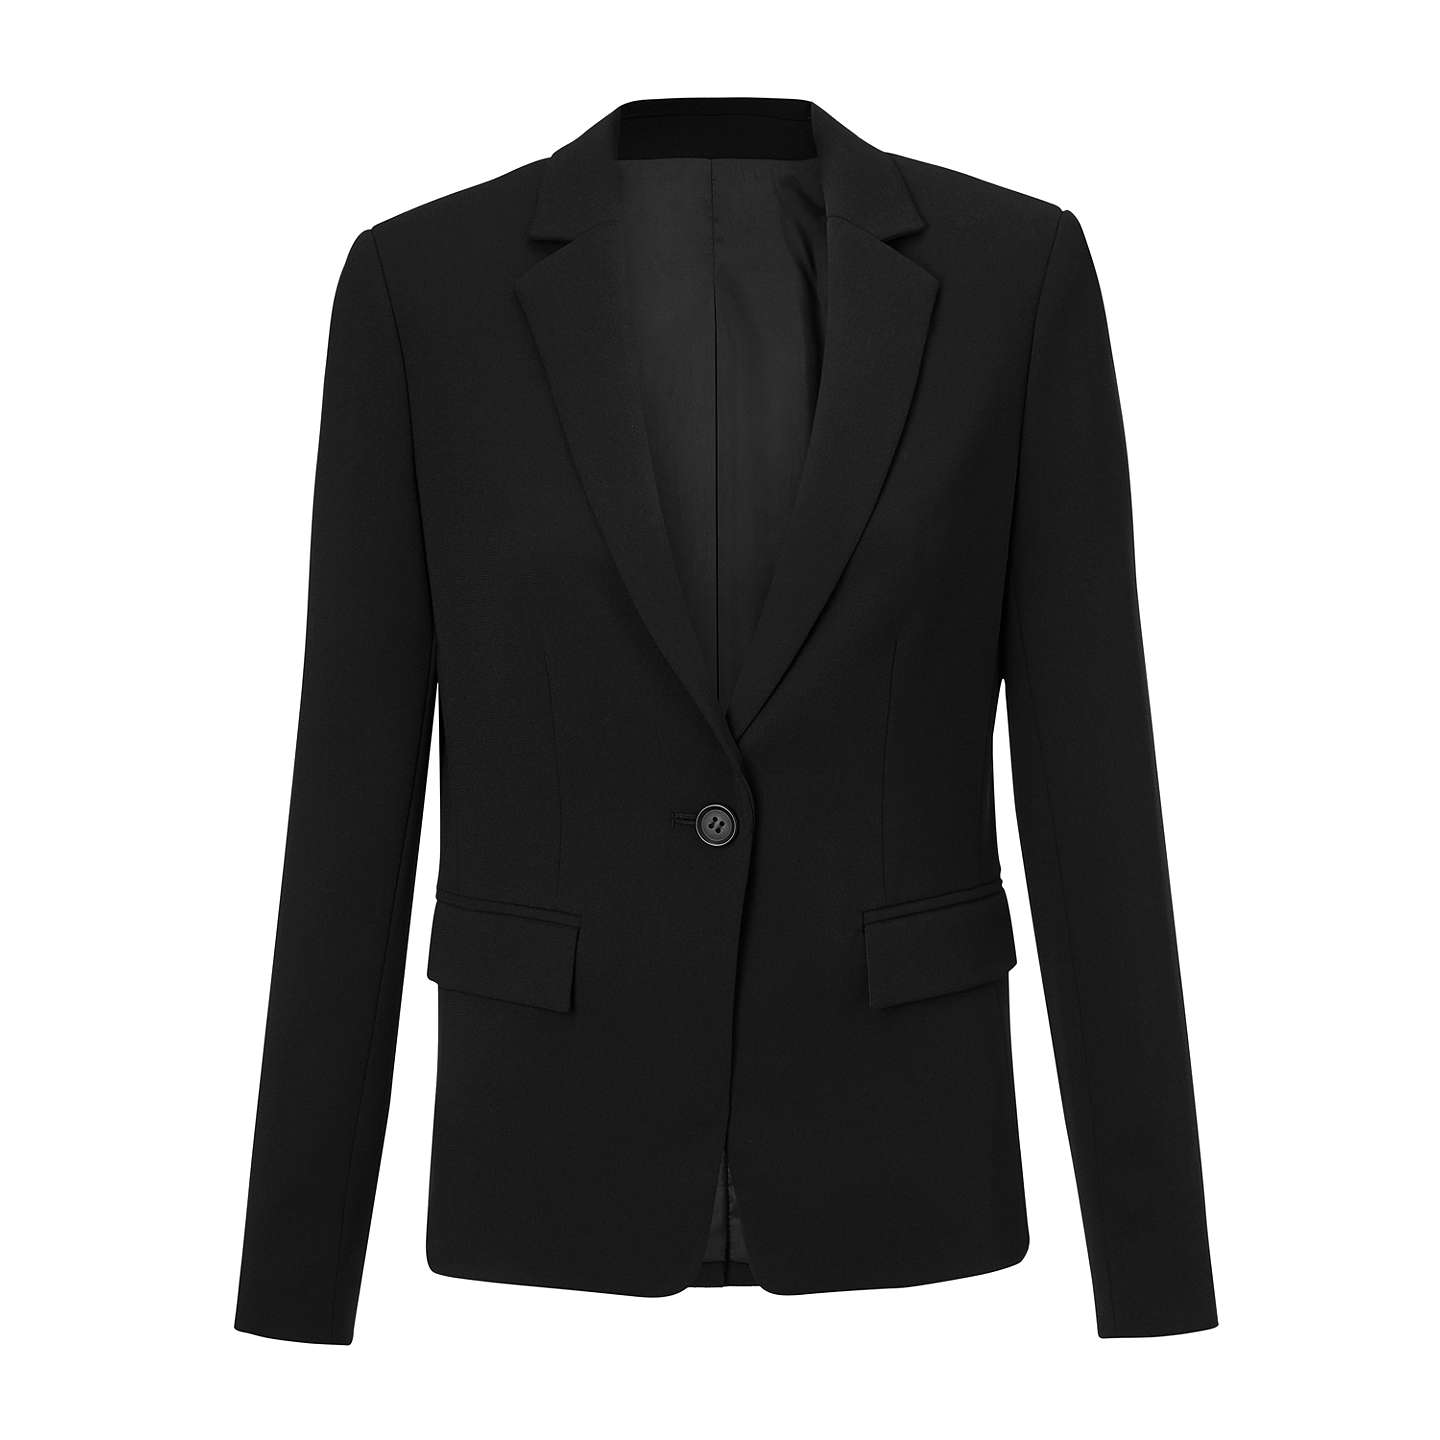 BuyJohn Lewis Eva Crepe Jacket, Black, 8 Online at johnlewis.com